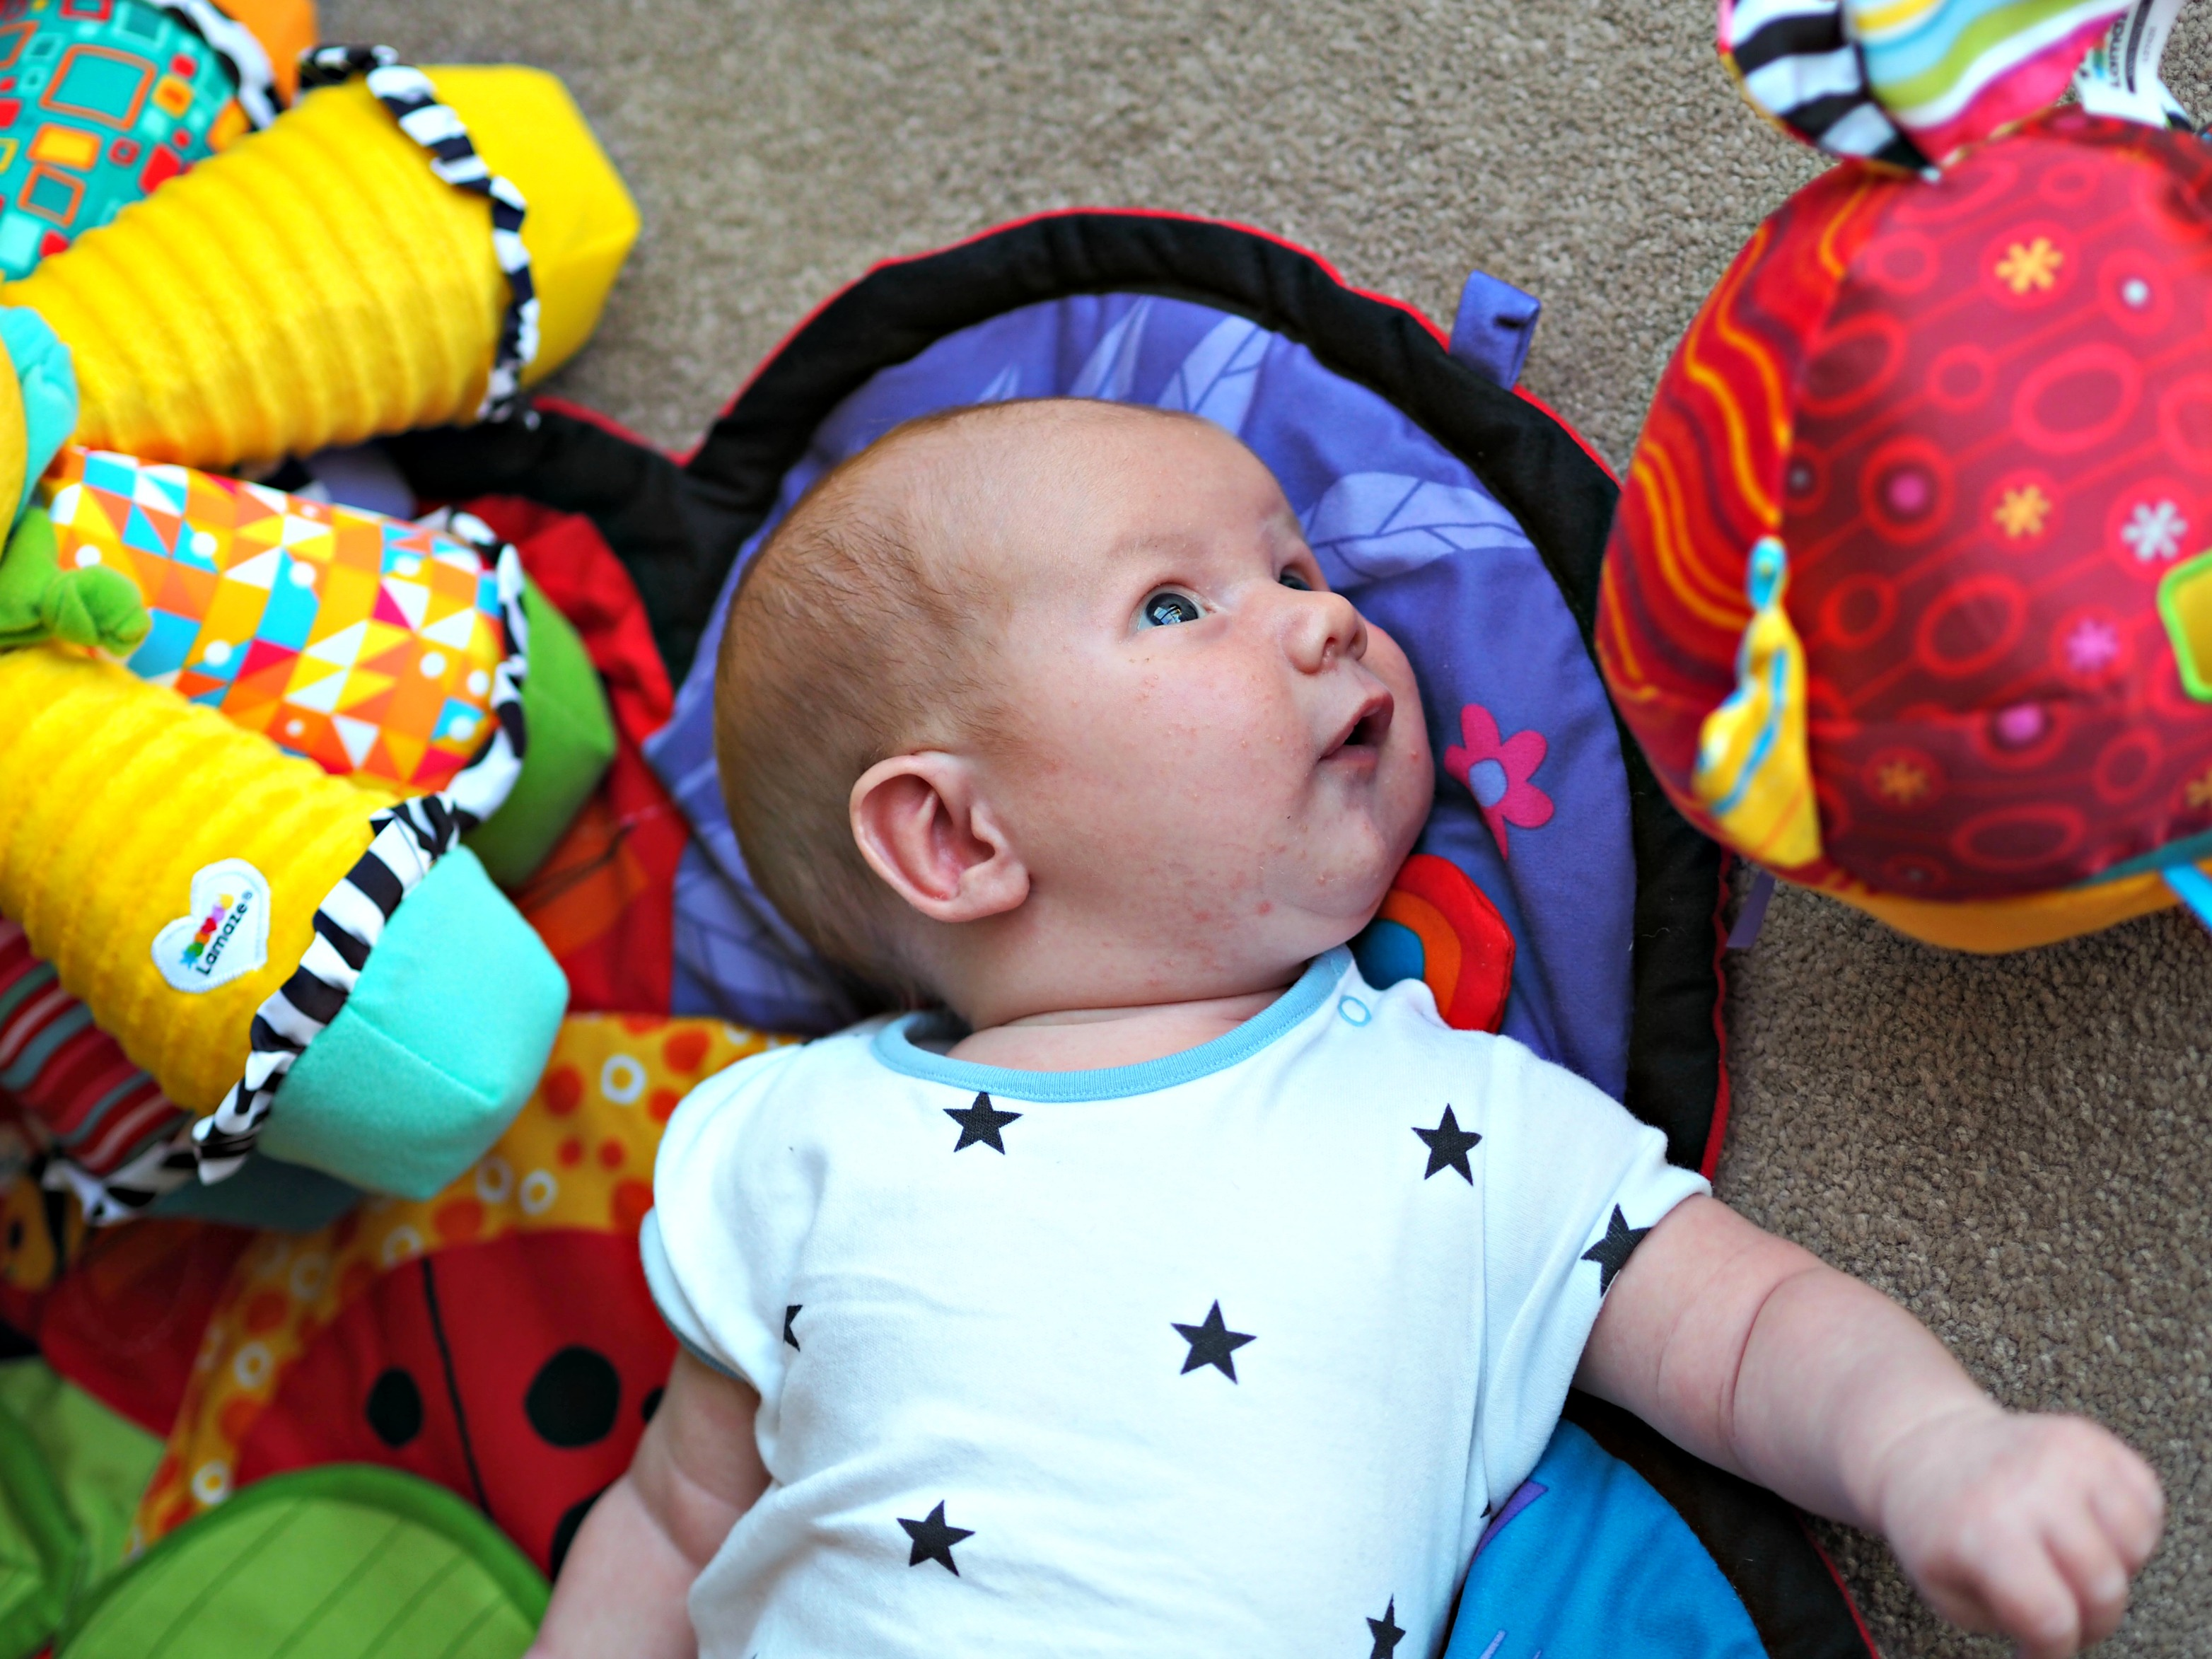 Encouraging Baby's Development with Tomy Lamaze - Bo with new toys